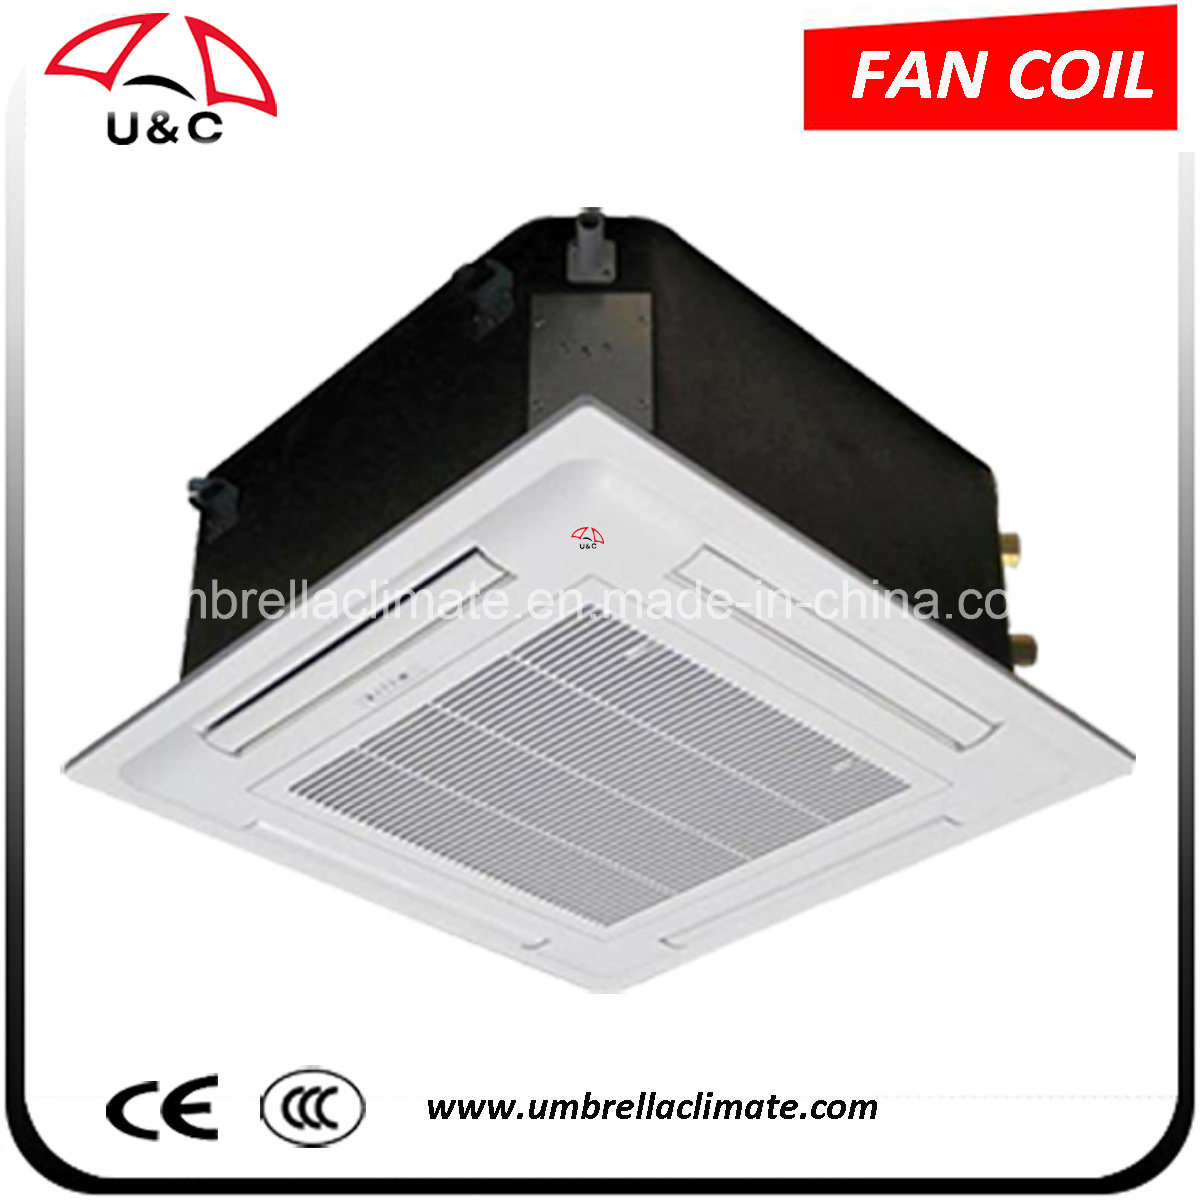 China Central Air Conditioner Use Cassette Type Ceiling Mounted Fan Coil Unit For Hotel Conditioning